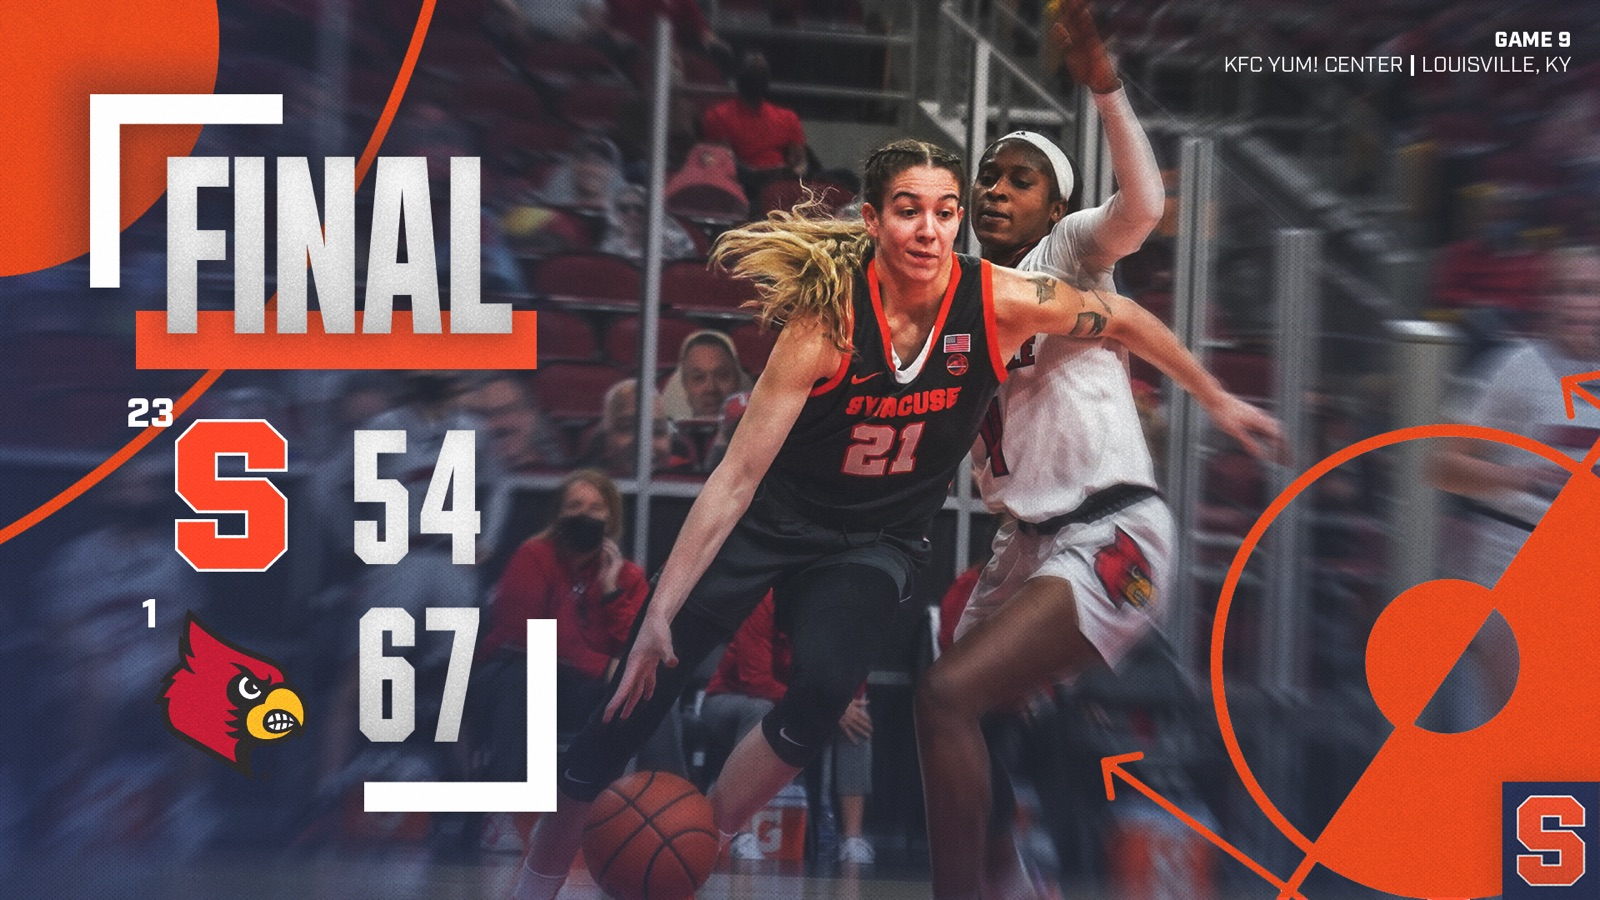 Syracuse women's basketball loses at top-ranked Louisville, 67-54 (full coverage)